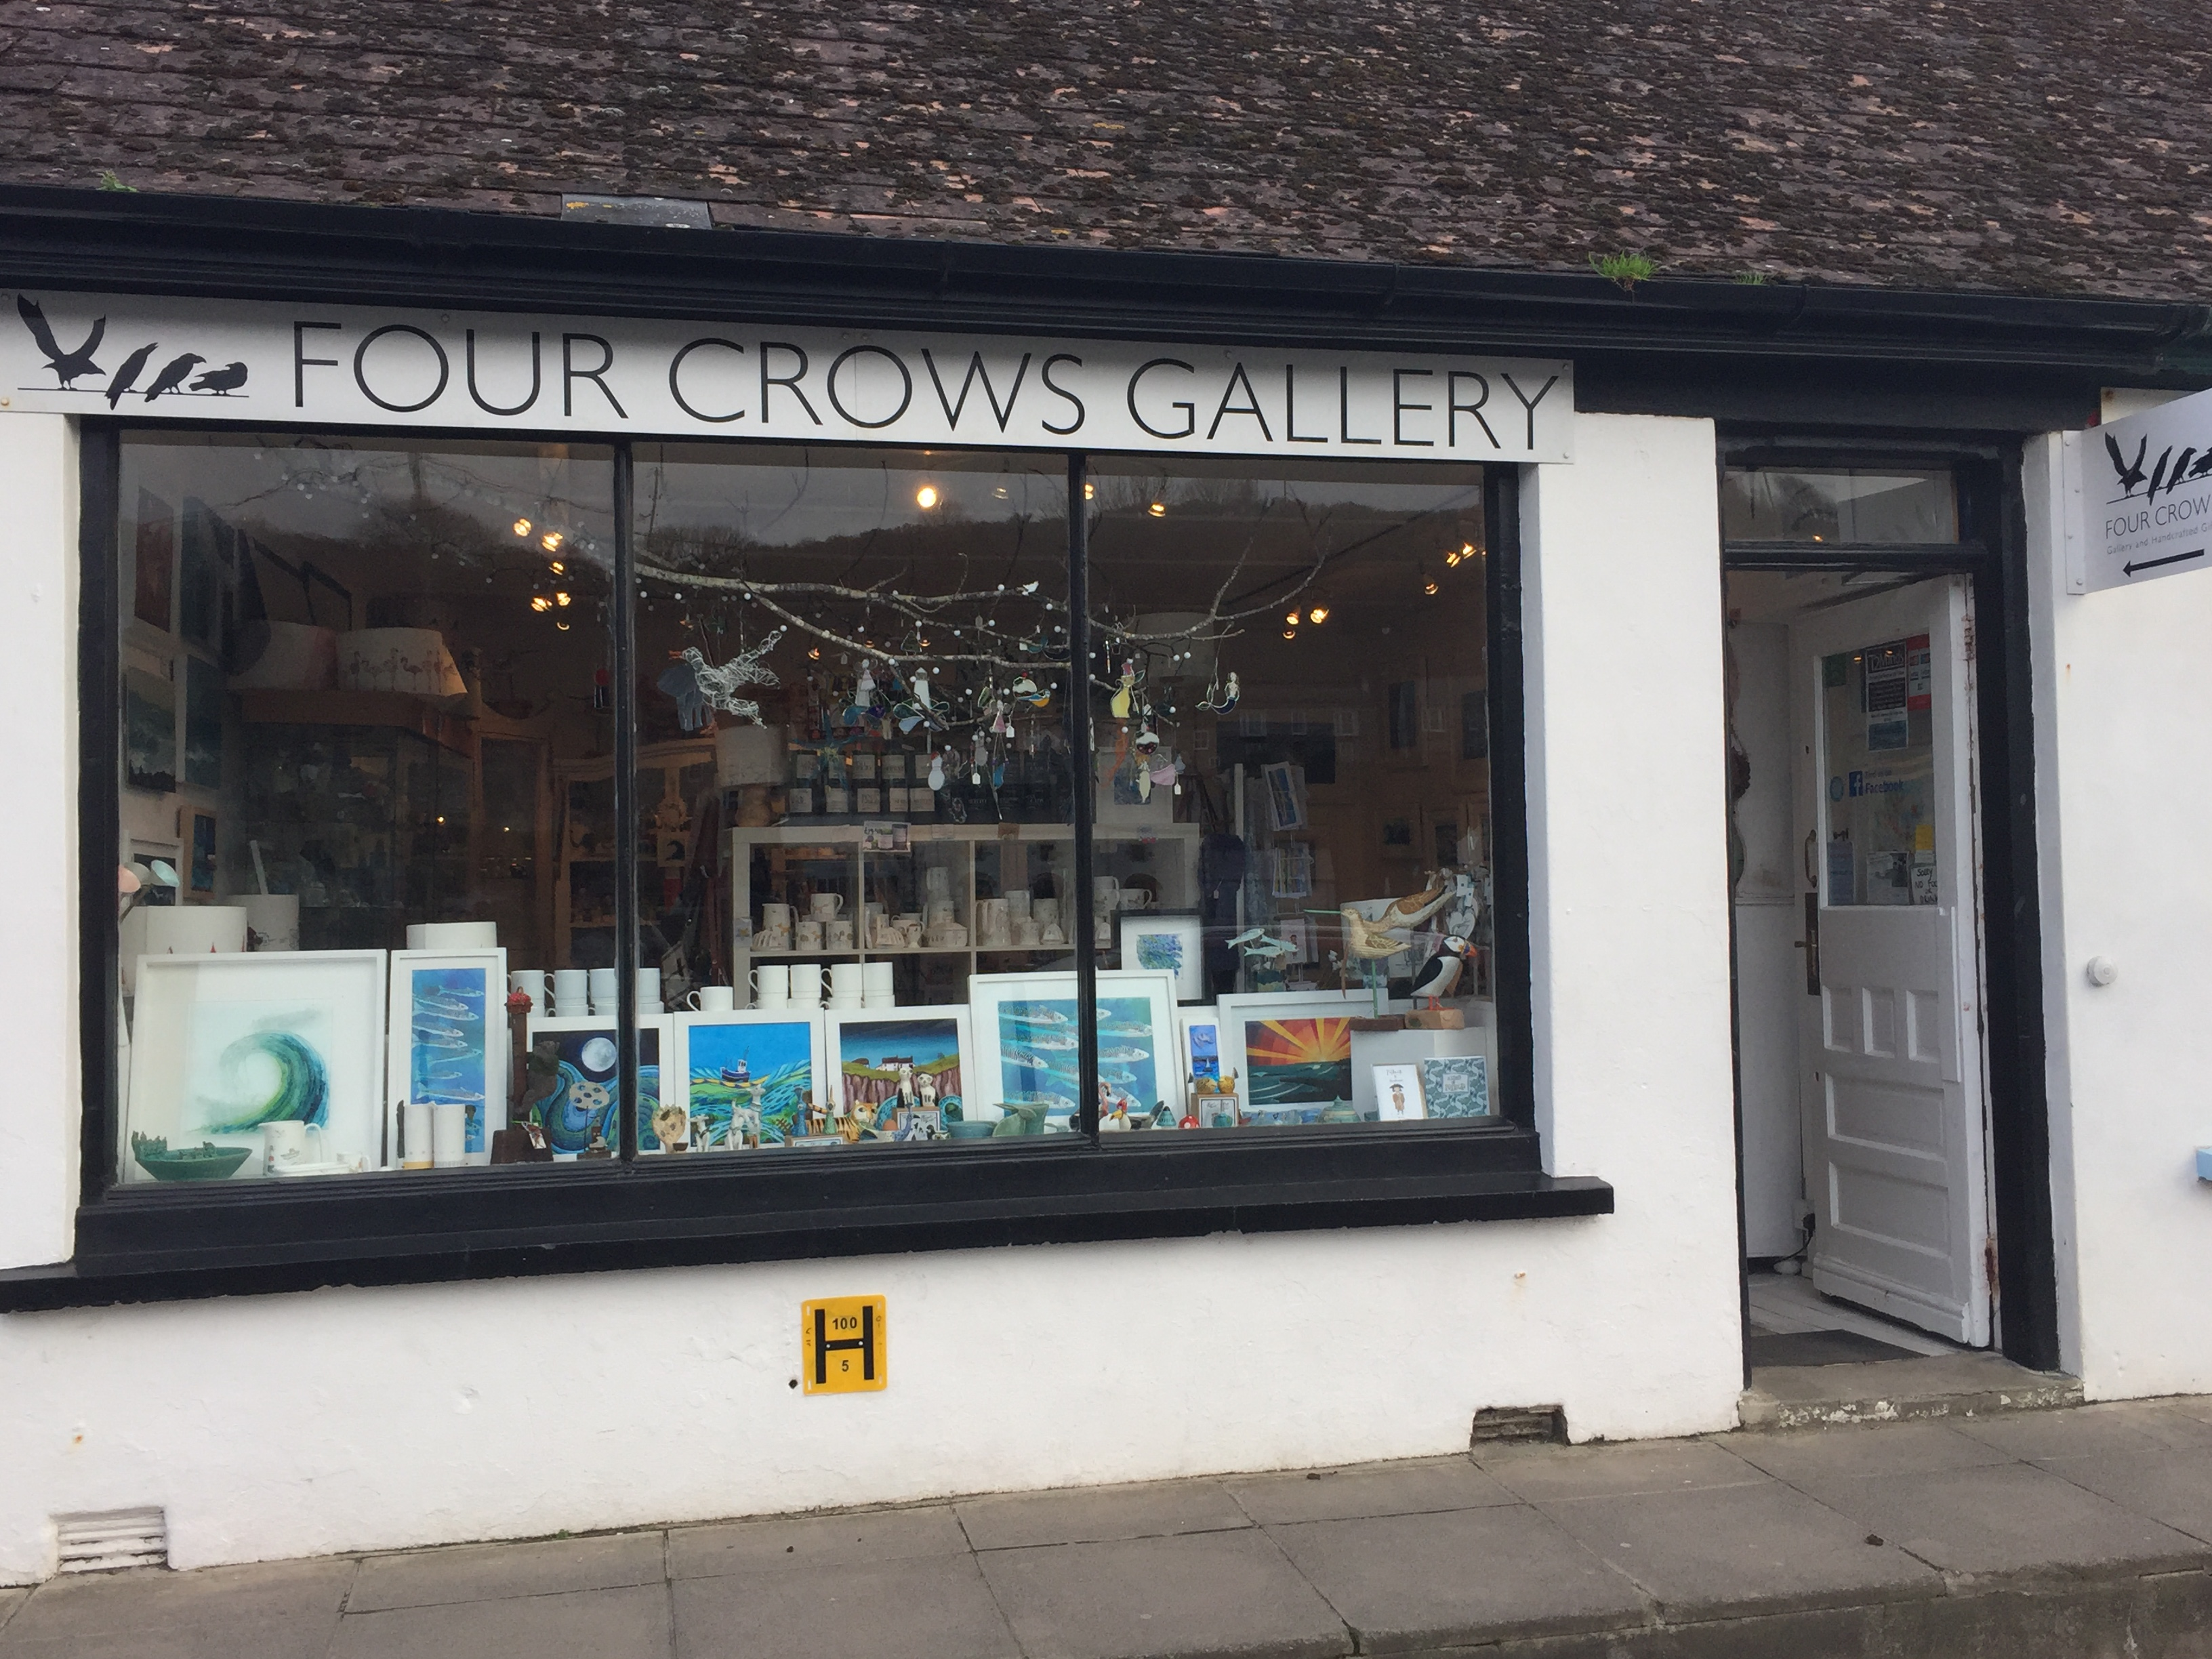 The Four Crows Gallery